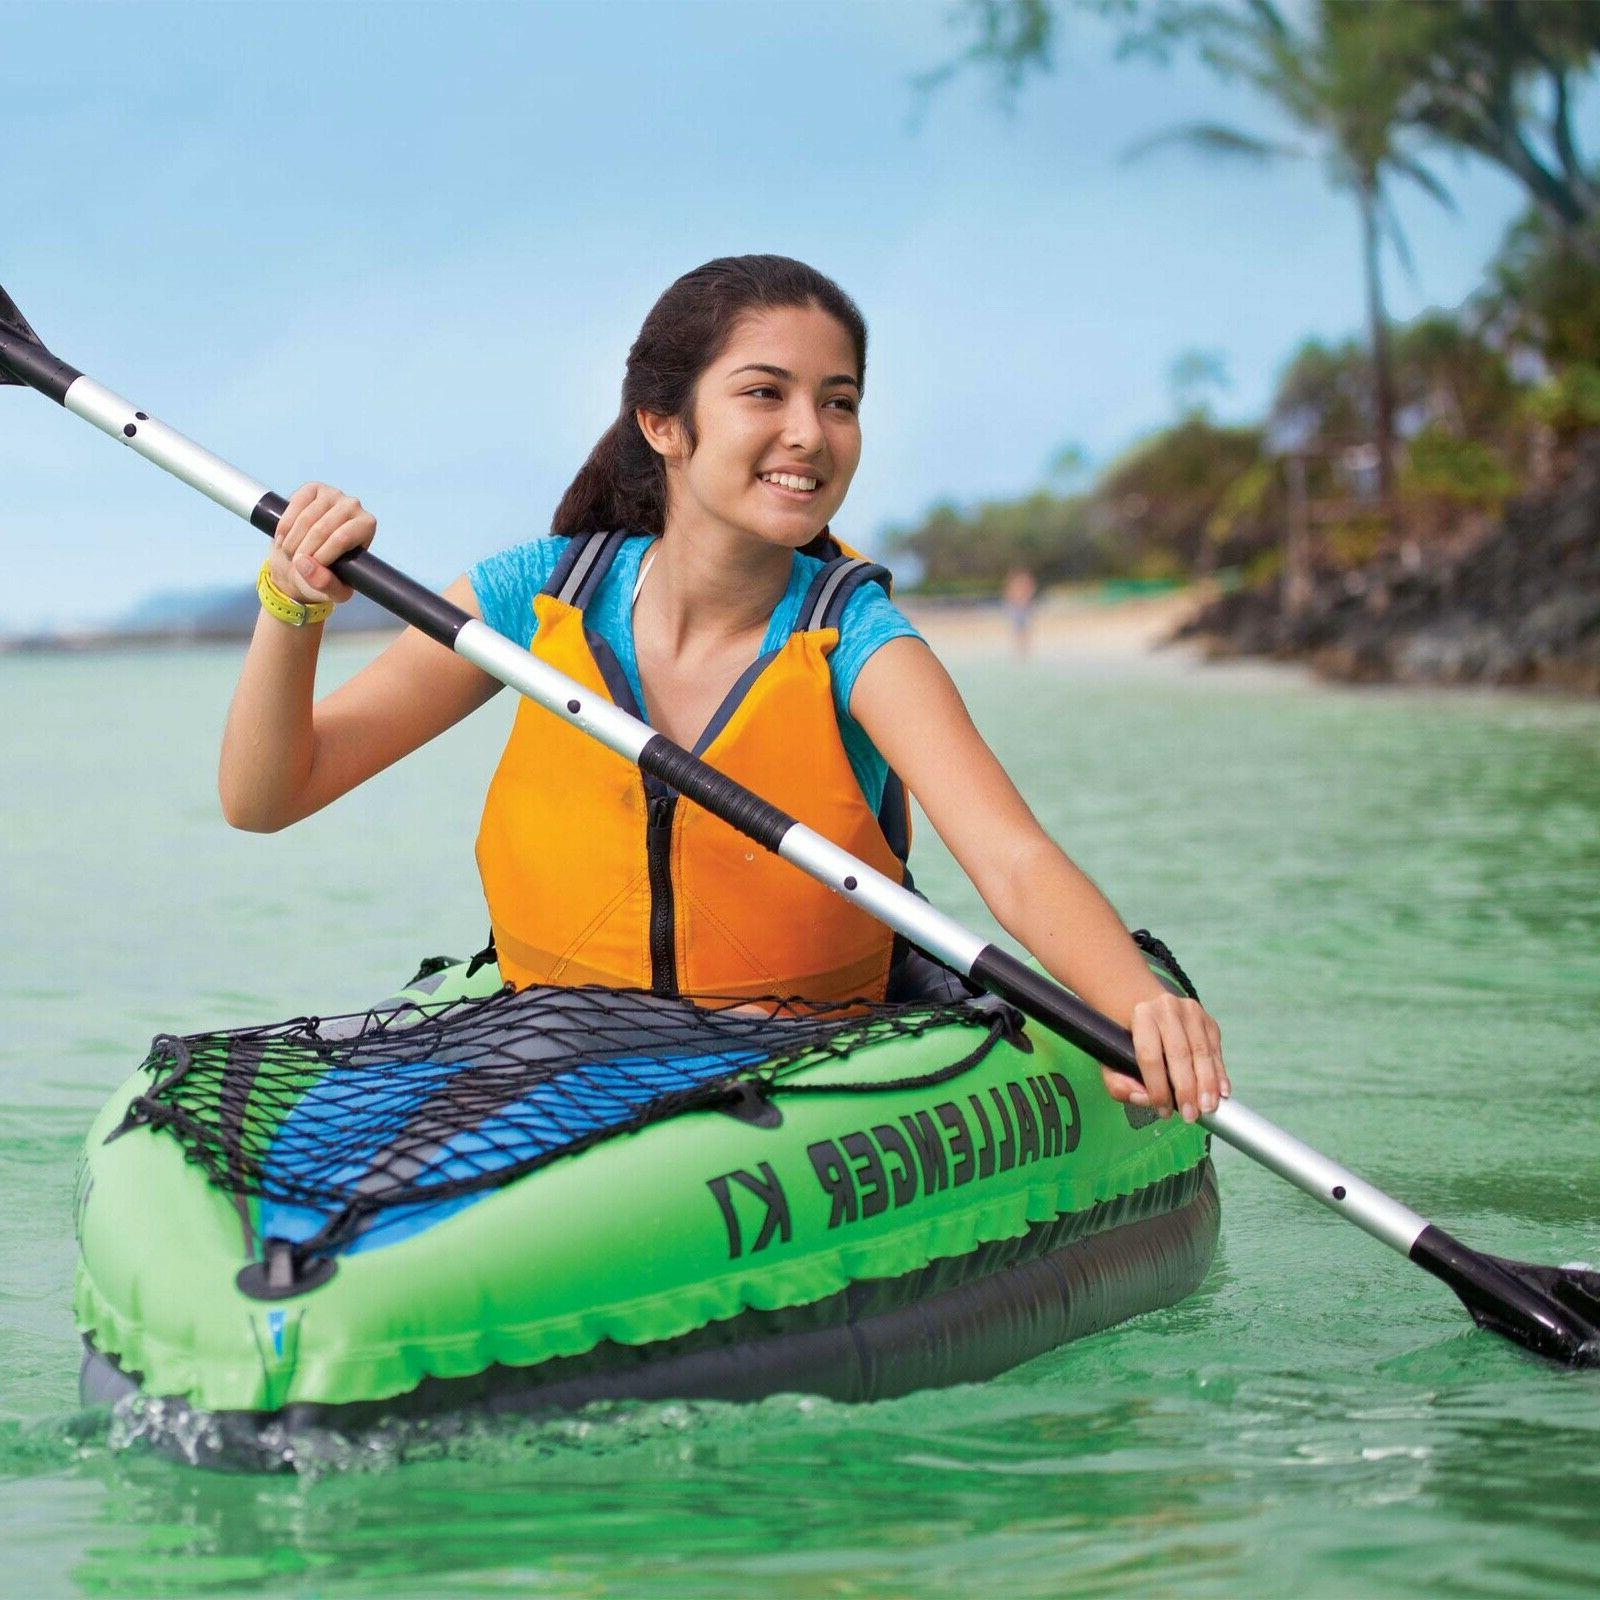 Inflatable 1-Person w/ Paddle Oar